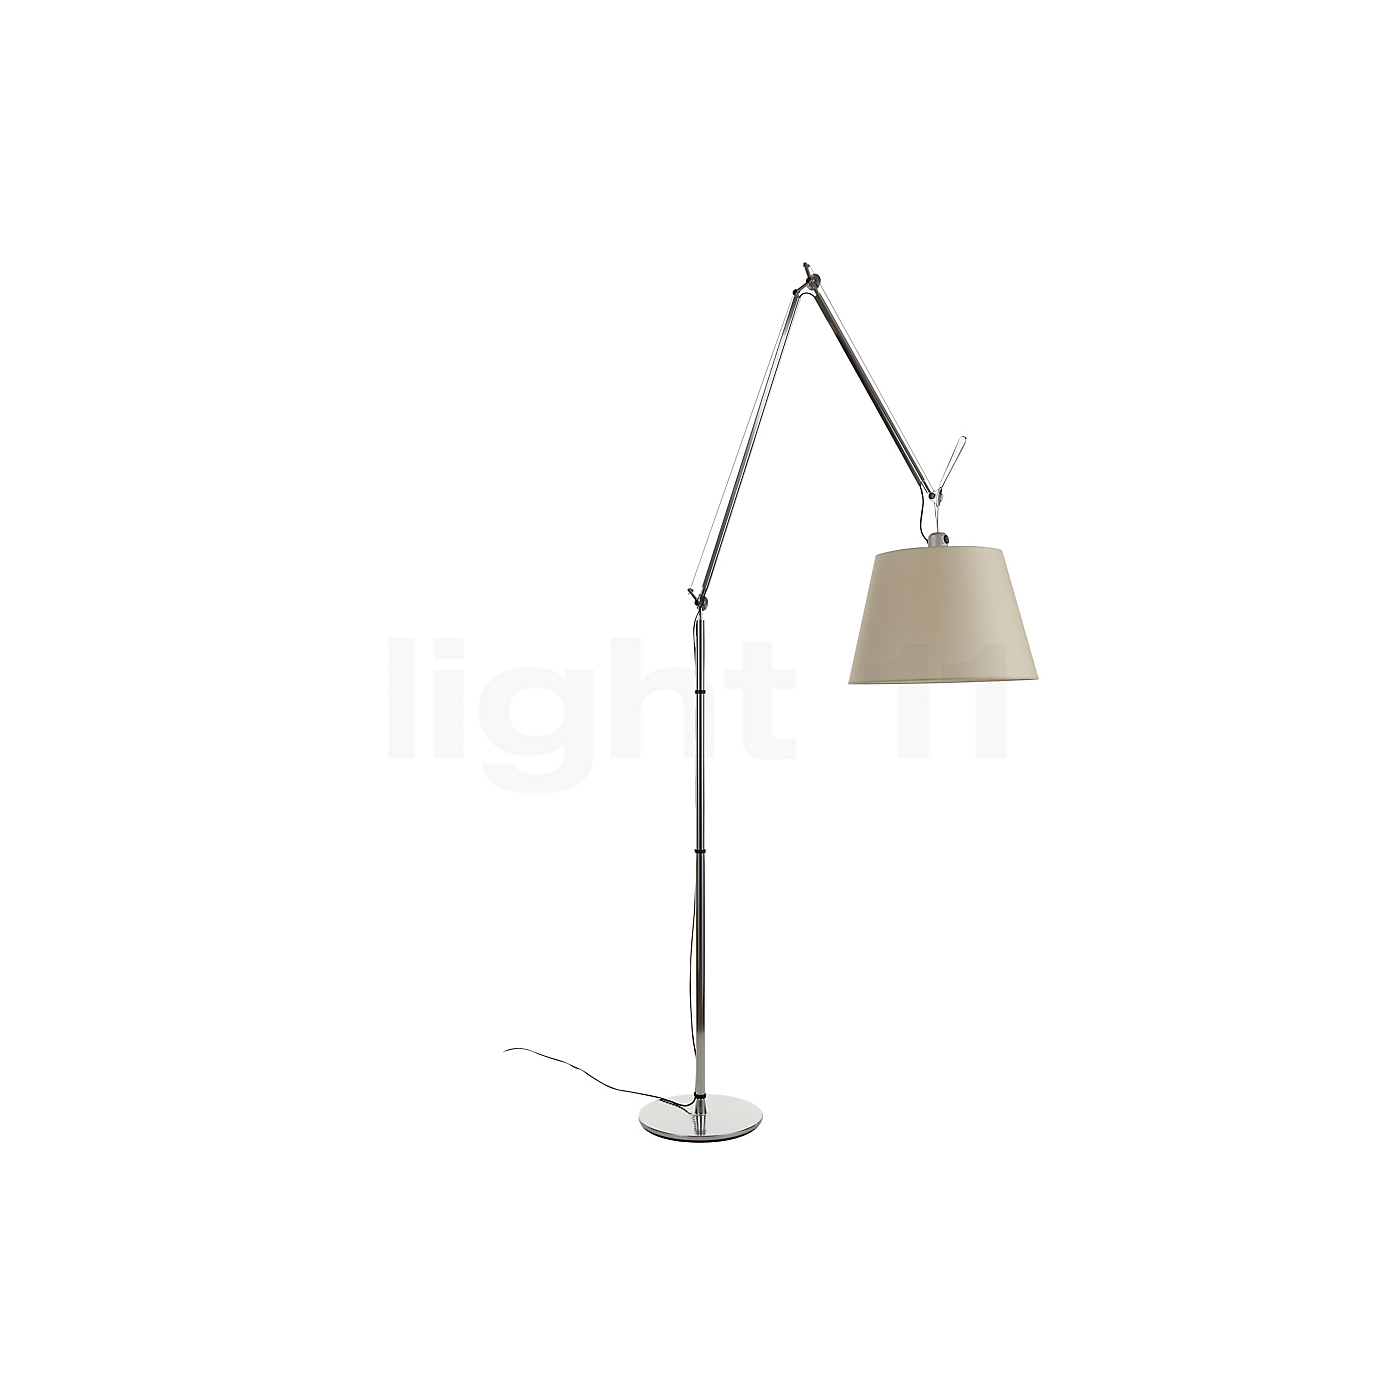 artemide tolomeo mega terra avec variateur. Black Bedroom Furniture Sets. Home Design Ideas